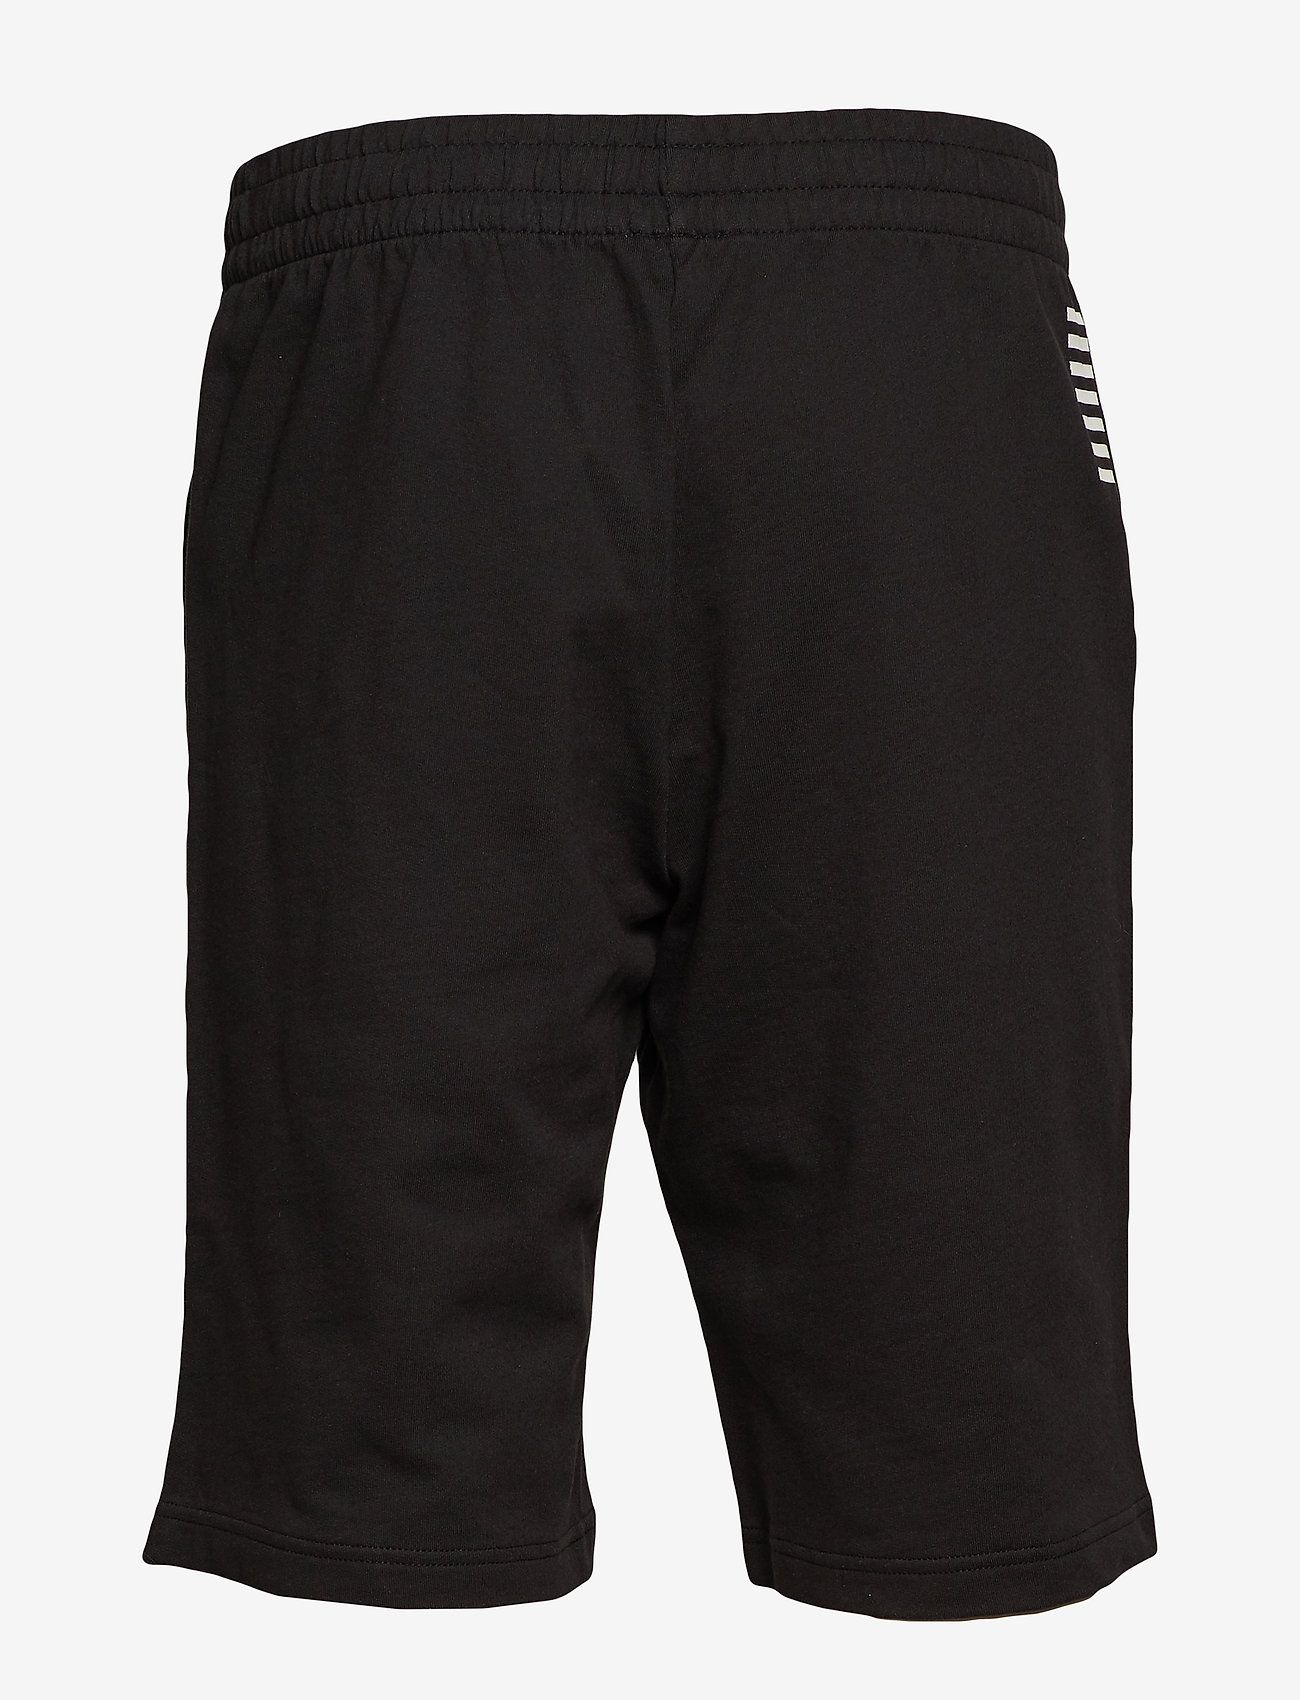 Ea7 Bermuda - Shorts Black